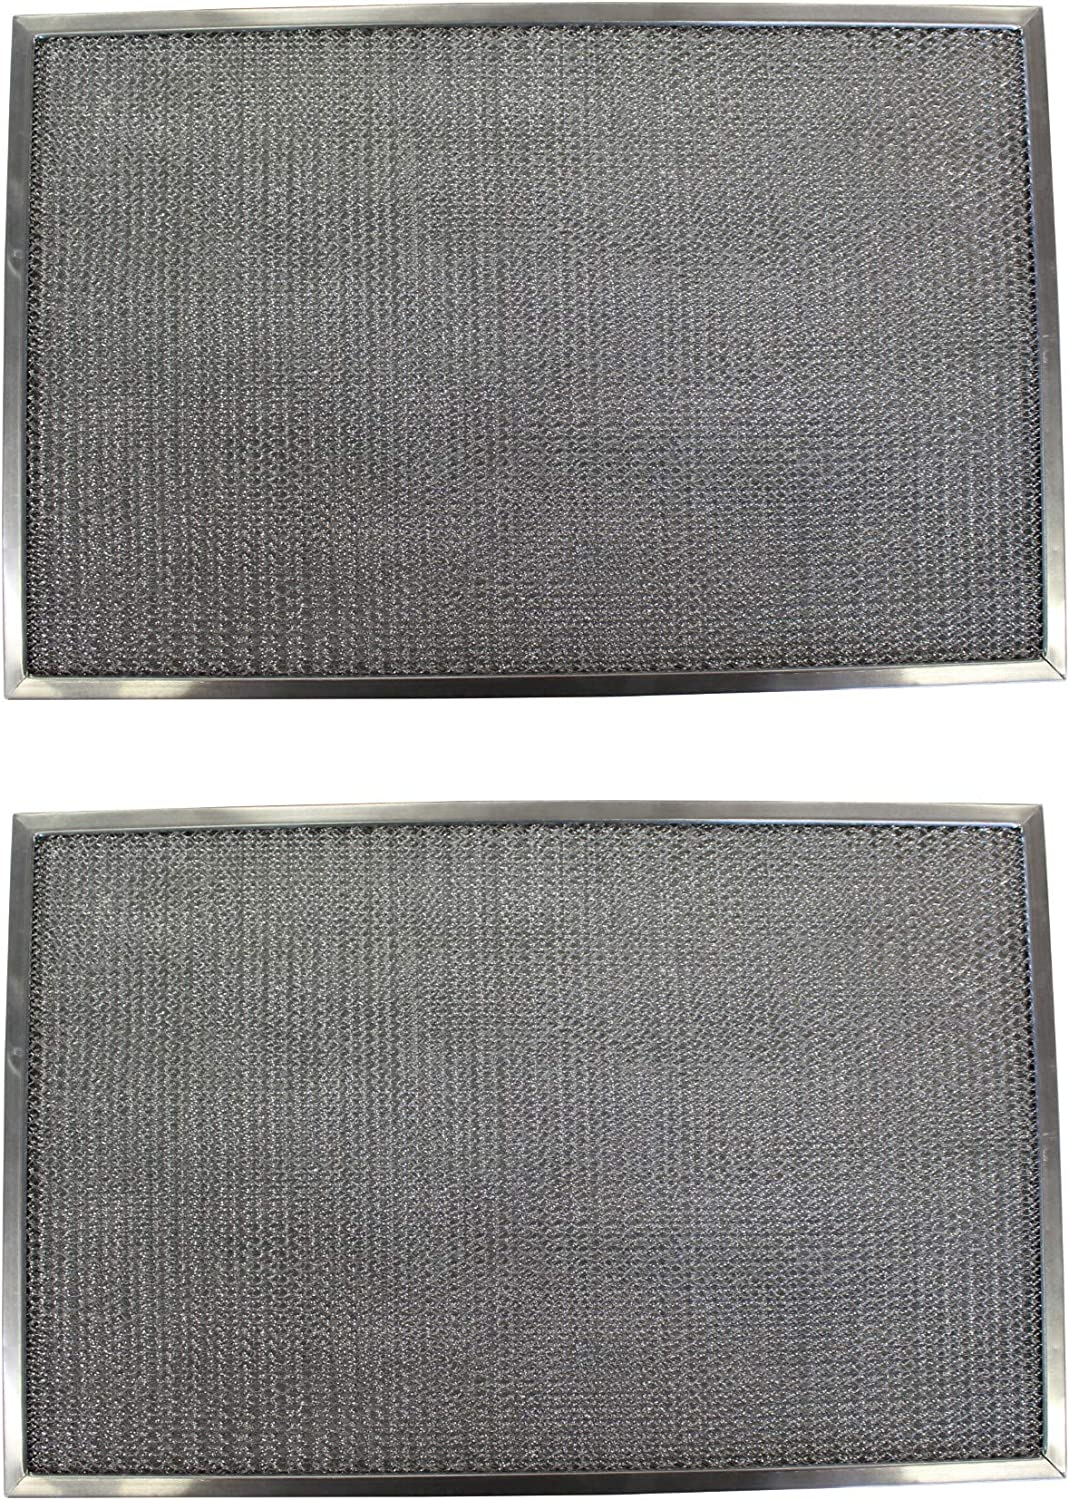 Replacement Aluminum Filters Compatible with Broan 990717415, Broan BPDFA30, Broan V14131,G-8191, -13-13/16 X 14-3/32 X 1/2 (2-Pack)